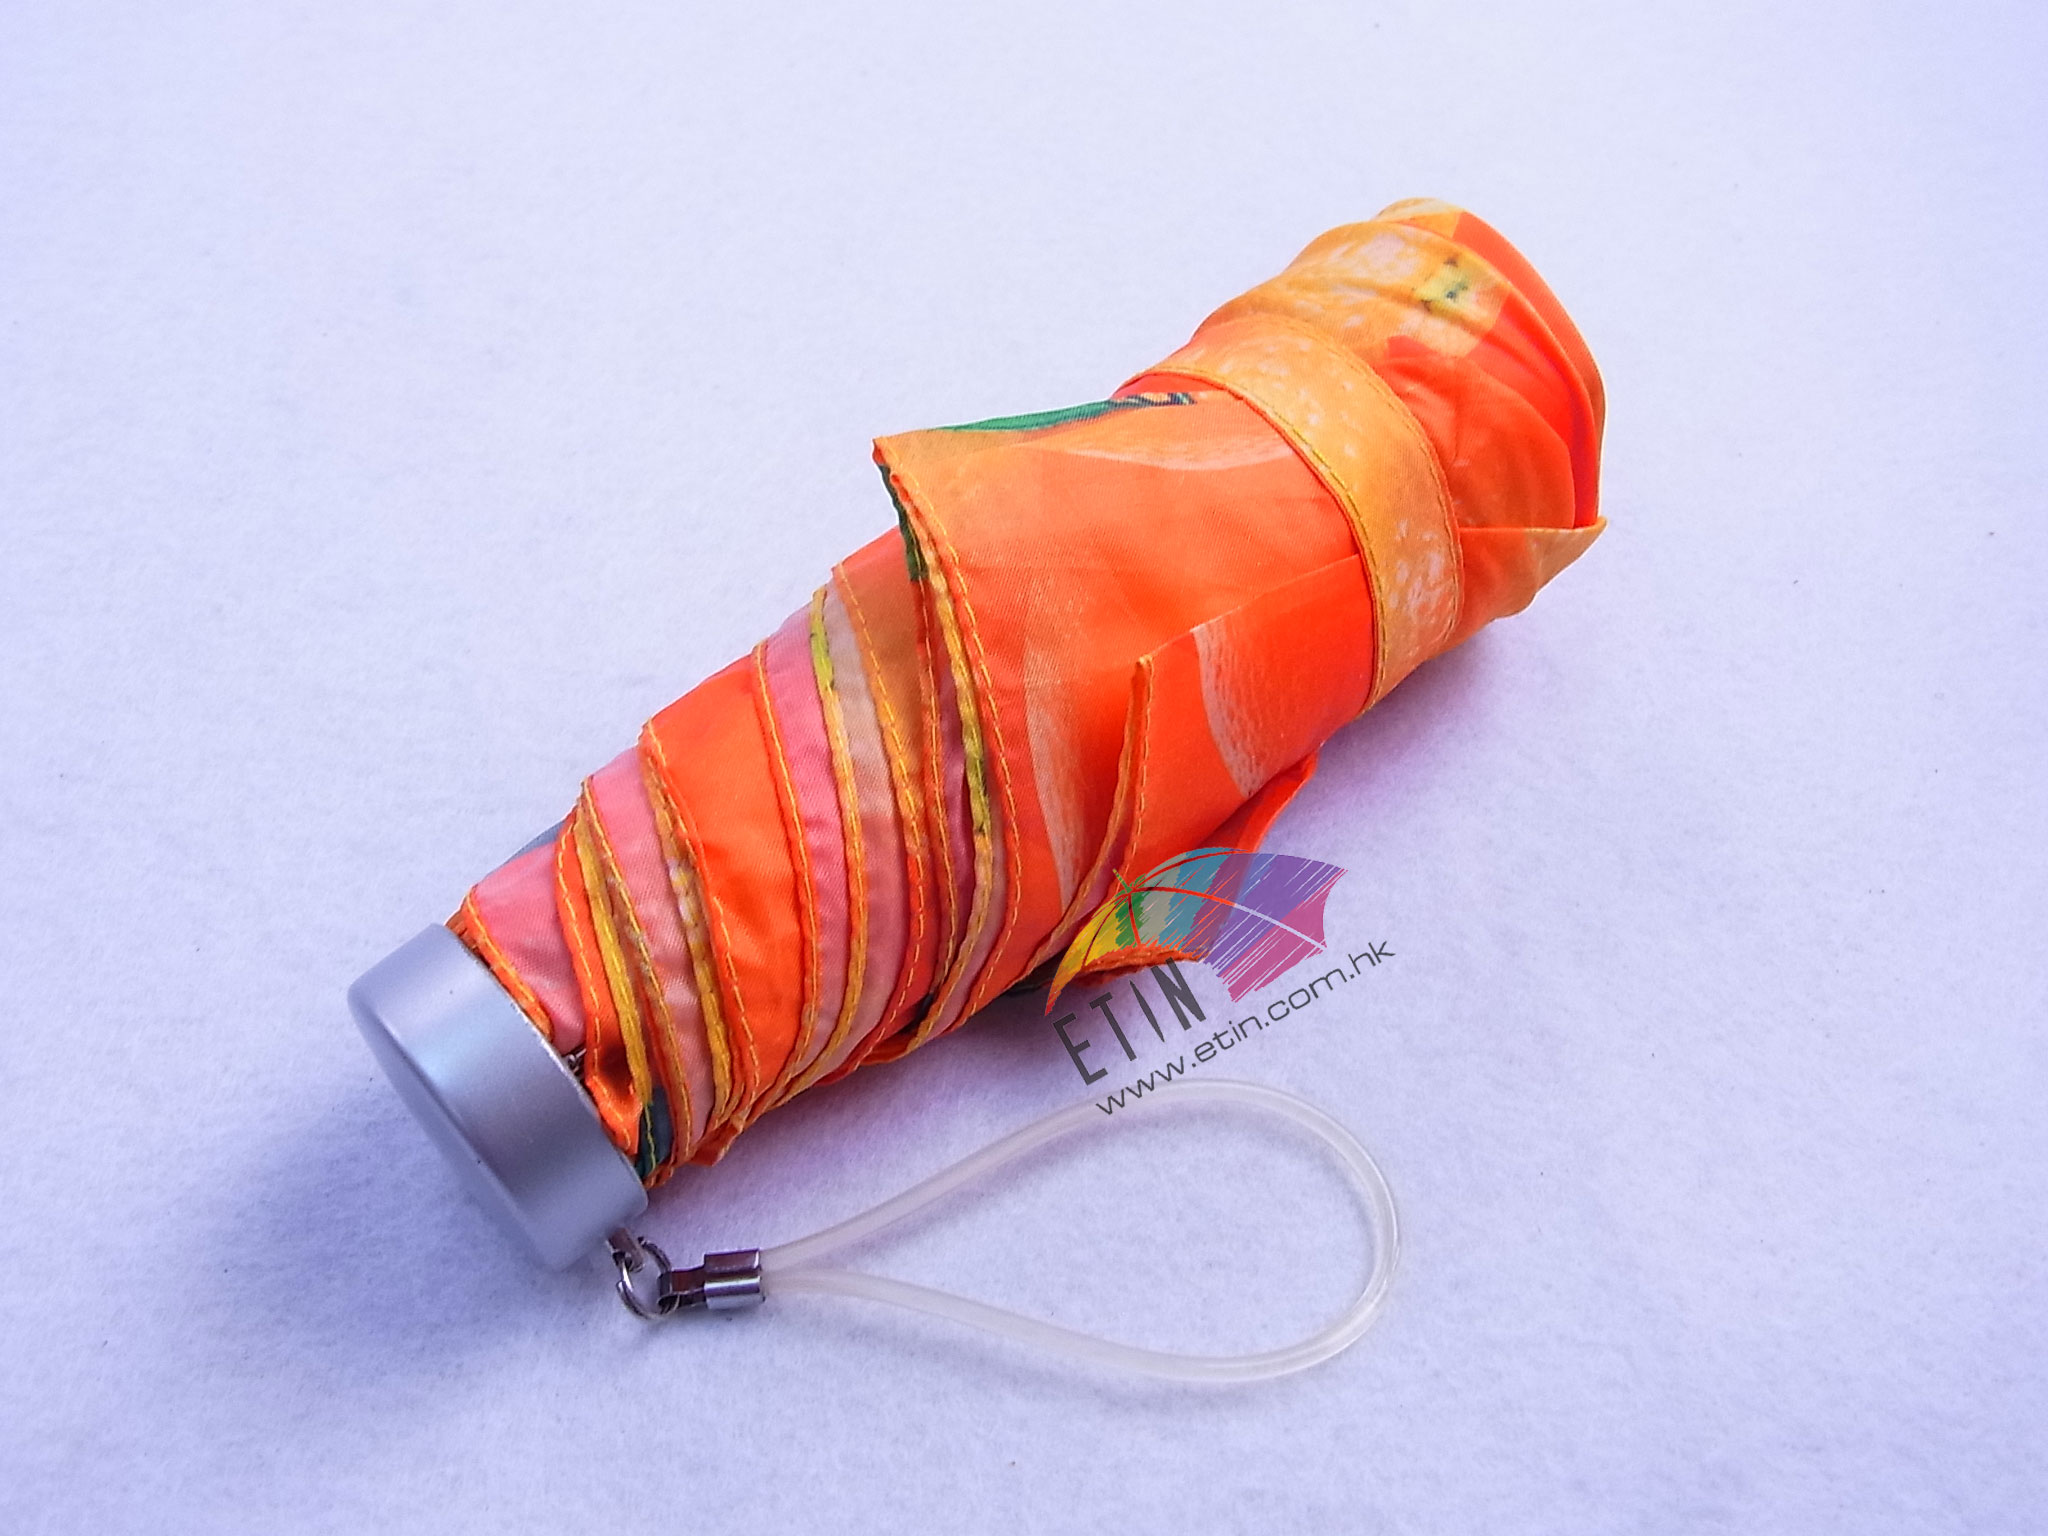 Etin Low cost promotional and small size umbrella B005